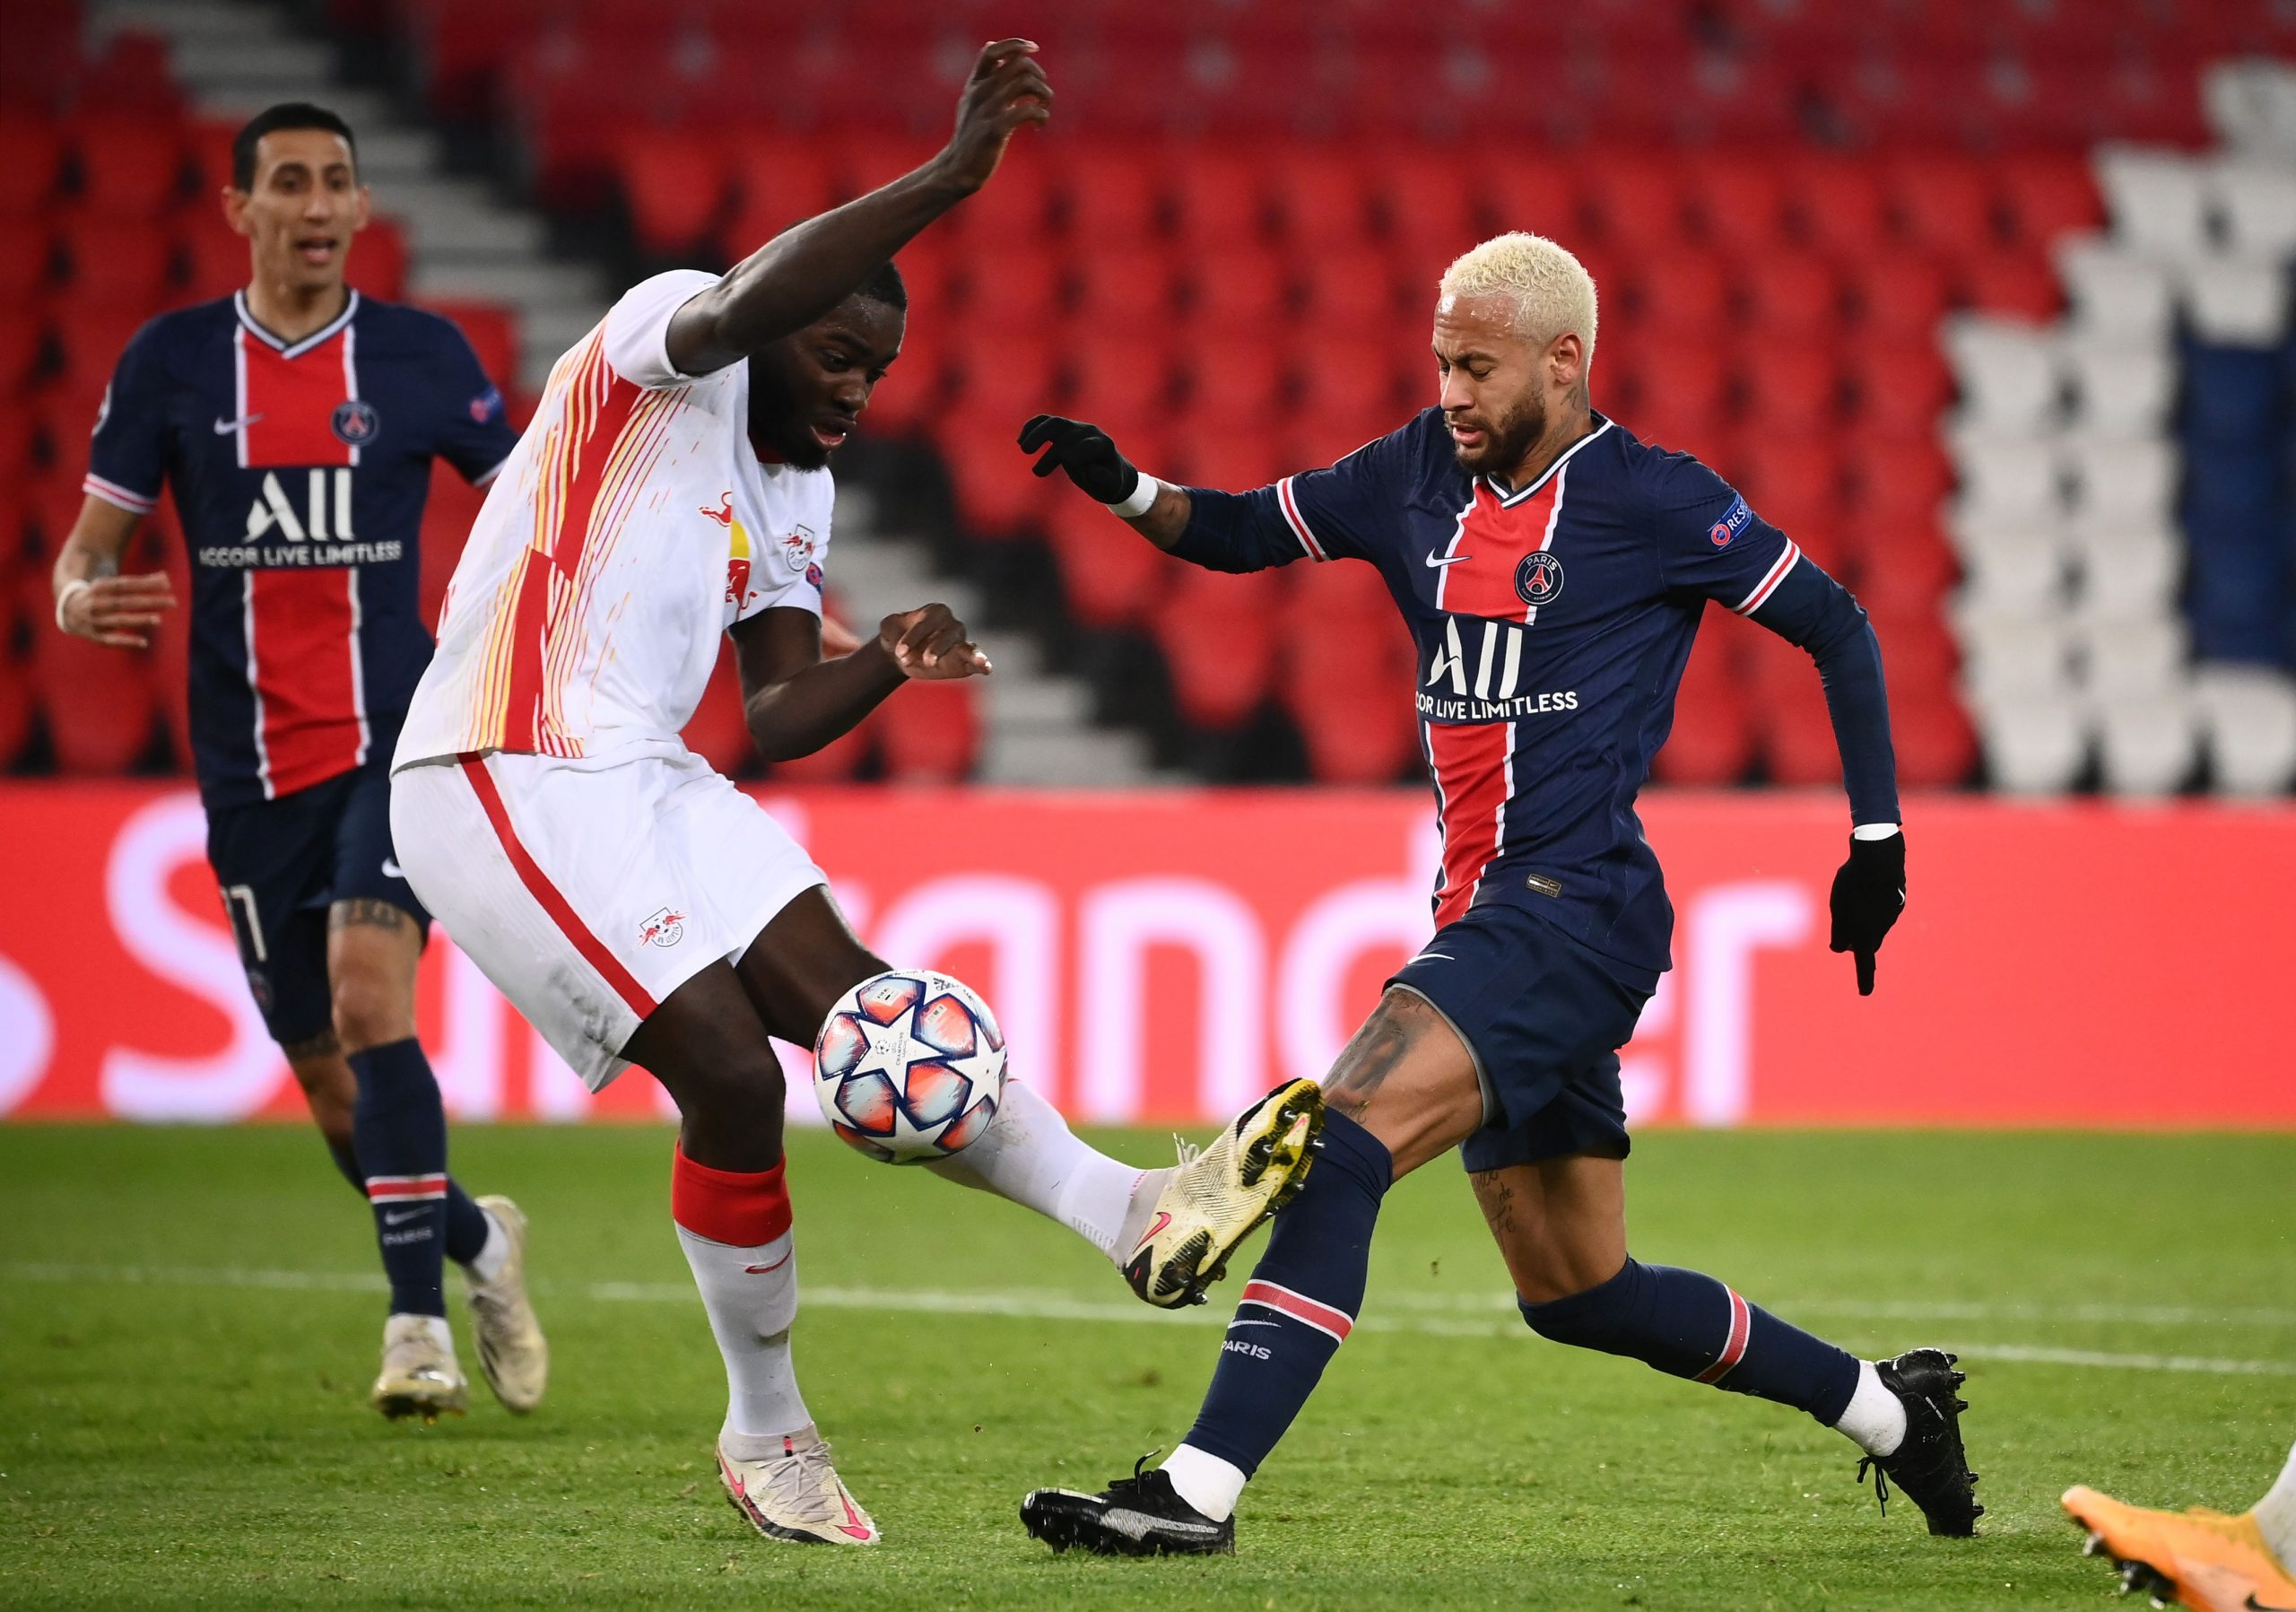 Ibrahima Konate tackles Neymar Jr. in a match against PSG in the UEFA Champions League. (GETTY Images)